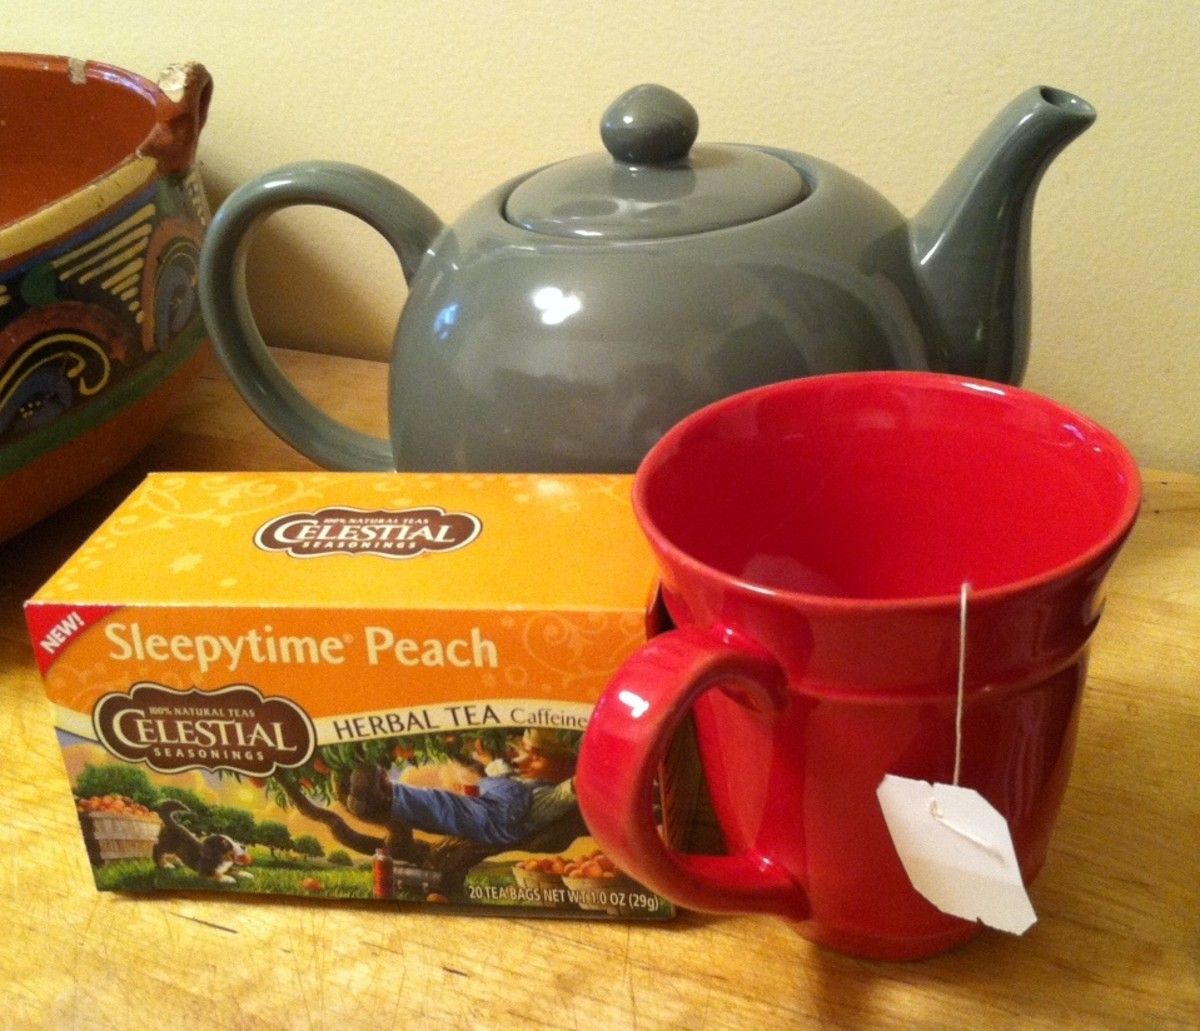 A calming cup of herbal tea before bed promotes good sleep.